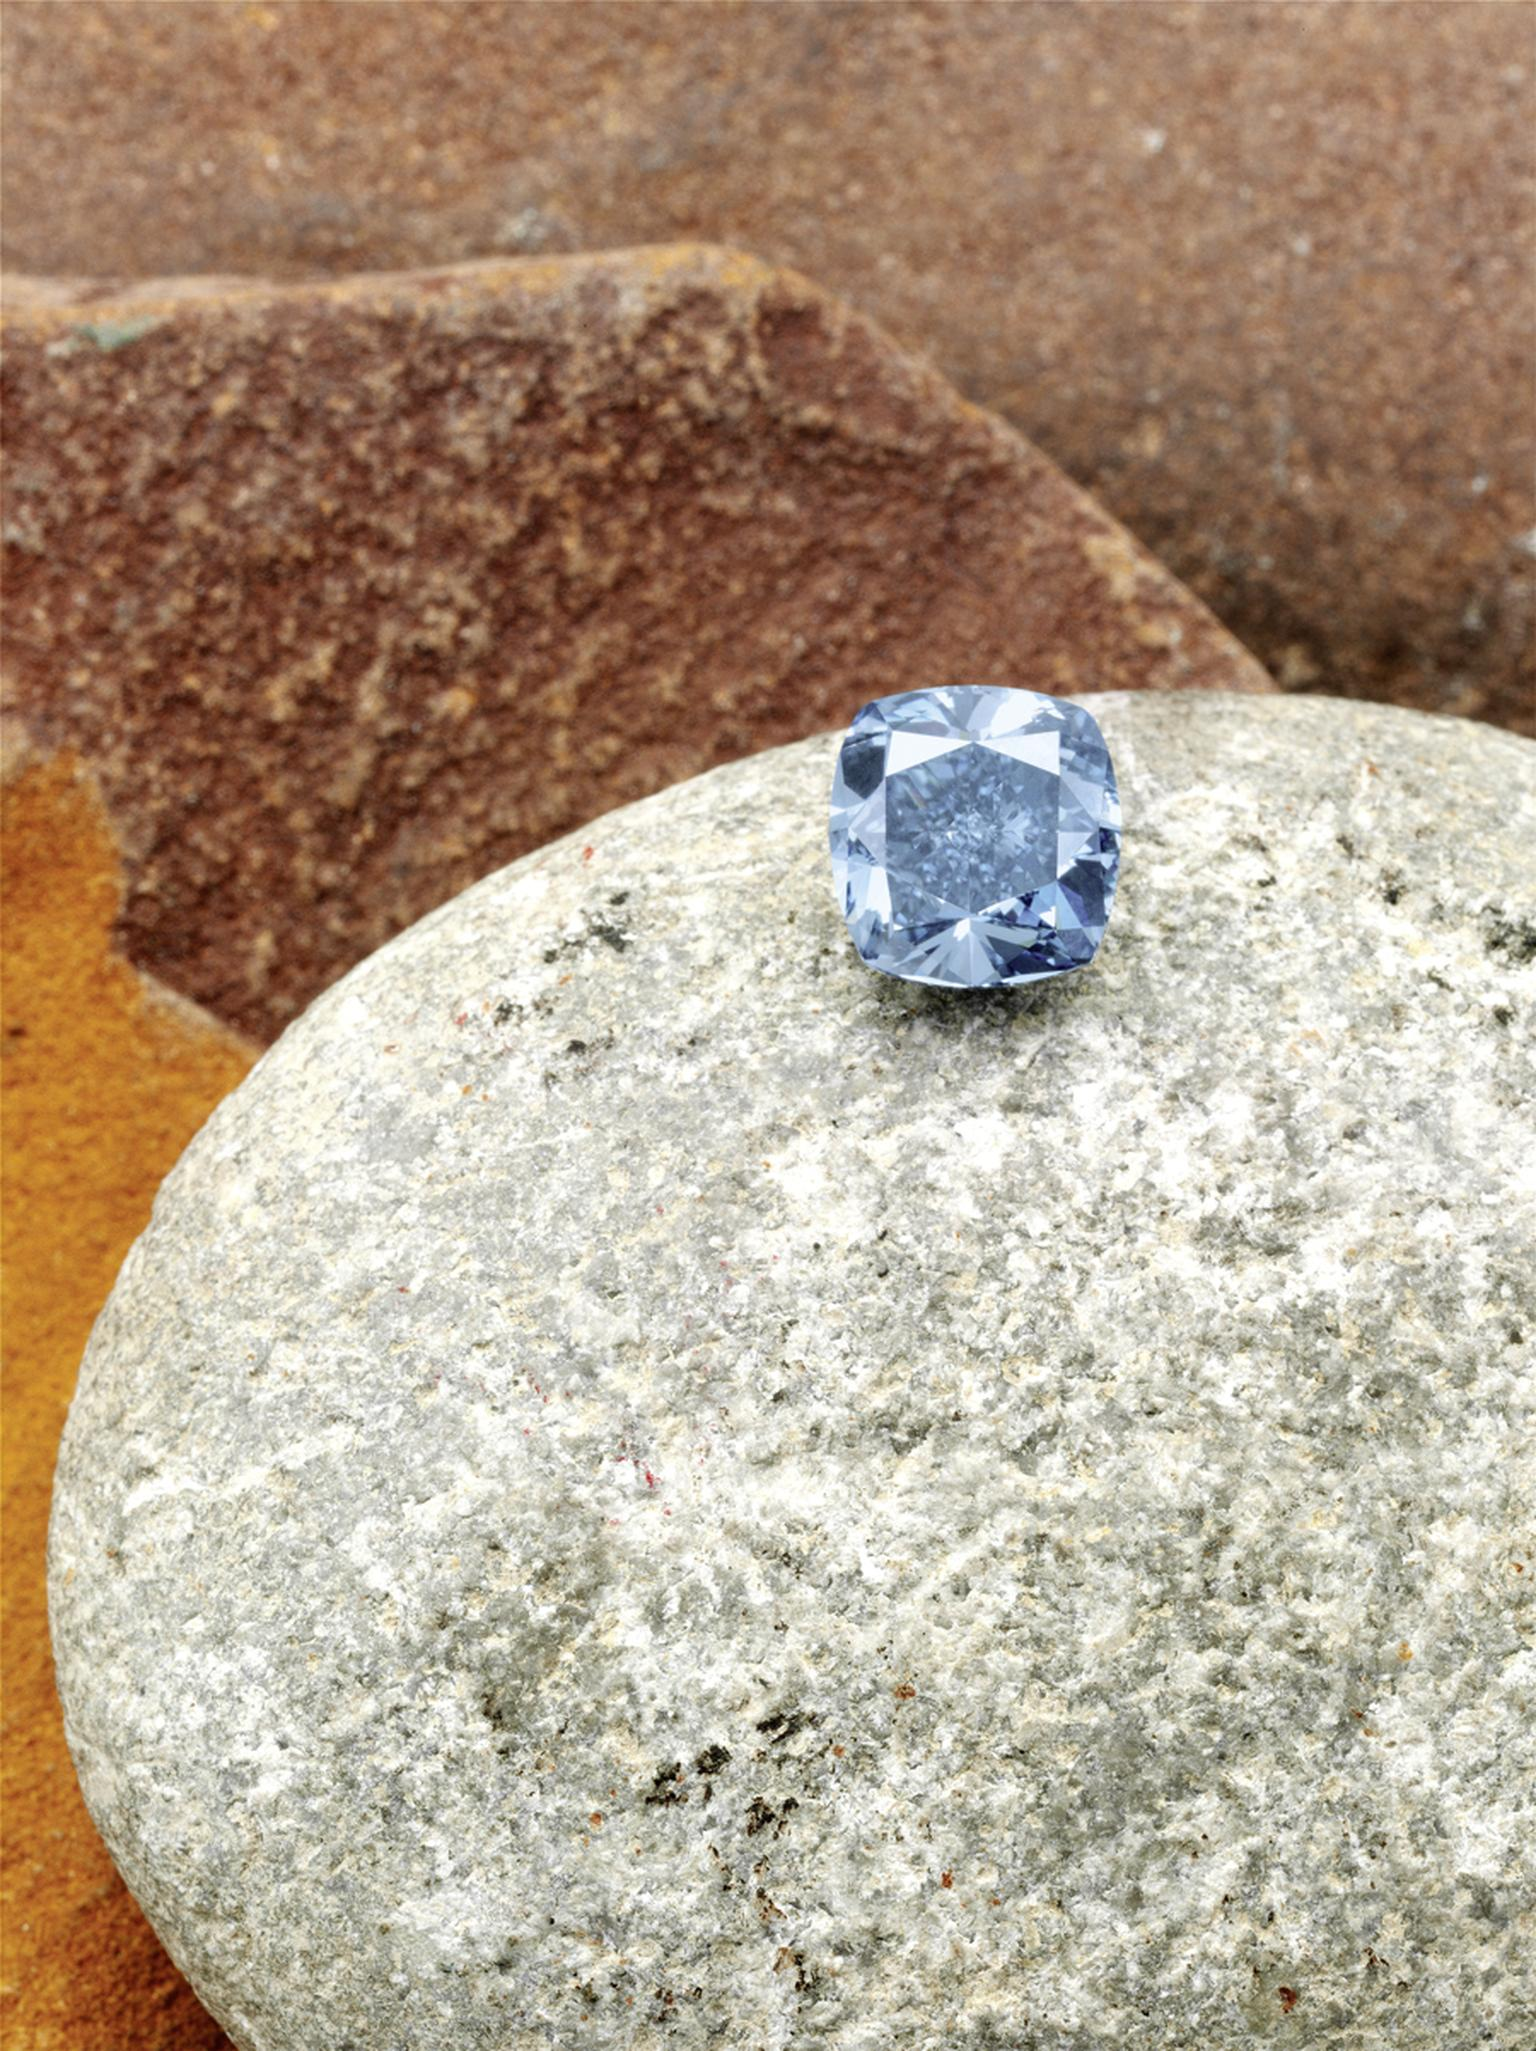 The Star of Josephine, a 7 carat, internally flawless, fancy vivid blue diamond recovered from Cullinan by Petra Diamonds - a leading independent diamond mining group and supplier of rough diamonds.